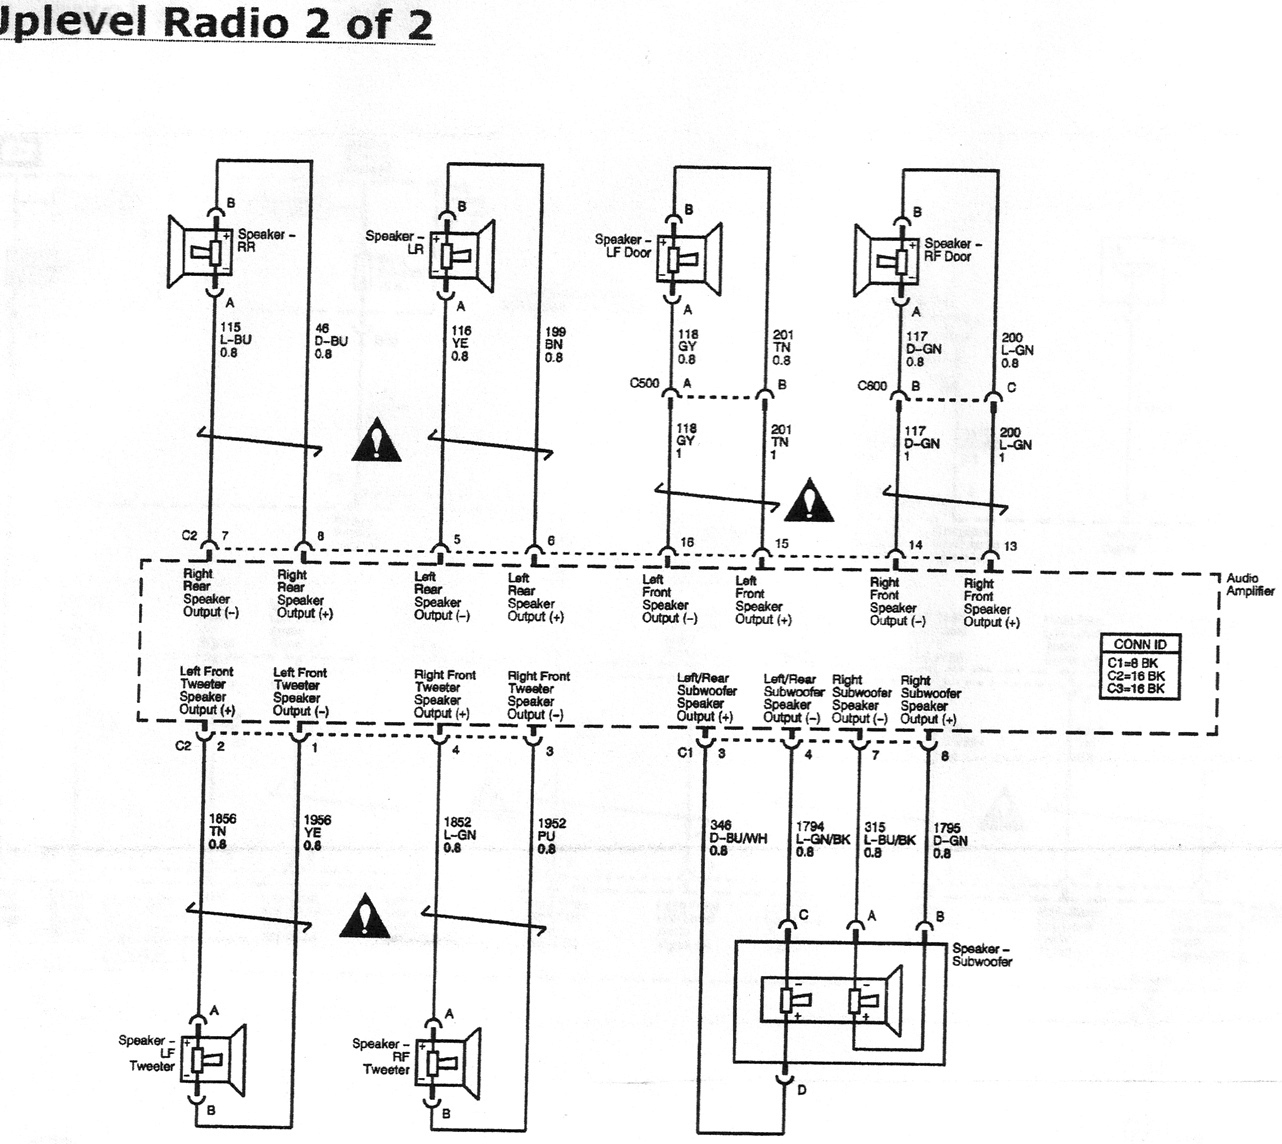 29802 monsoon amp speaker replacement monsoon_wiring_diagram_page_2 monsoon amp and speaker replacement saturn sky forums saturn firebird monsoon wiring diagram at gsmportal.co